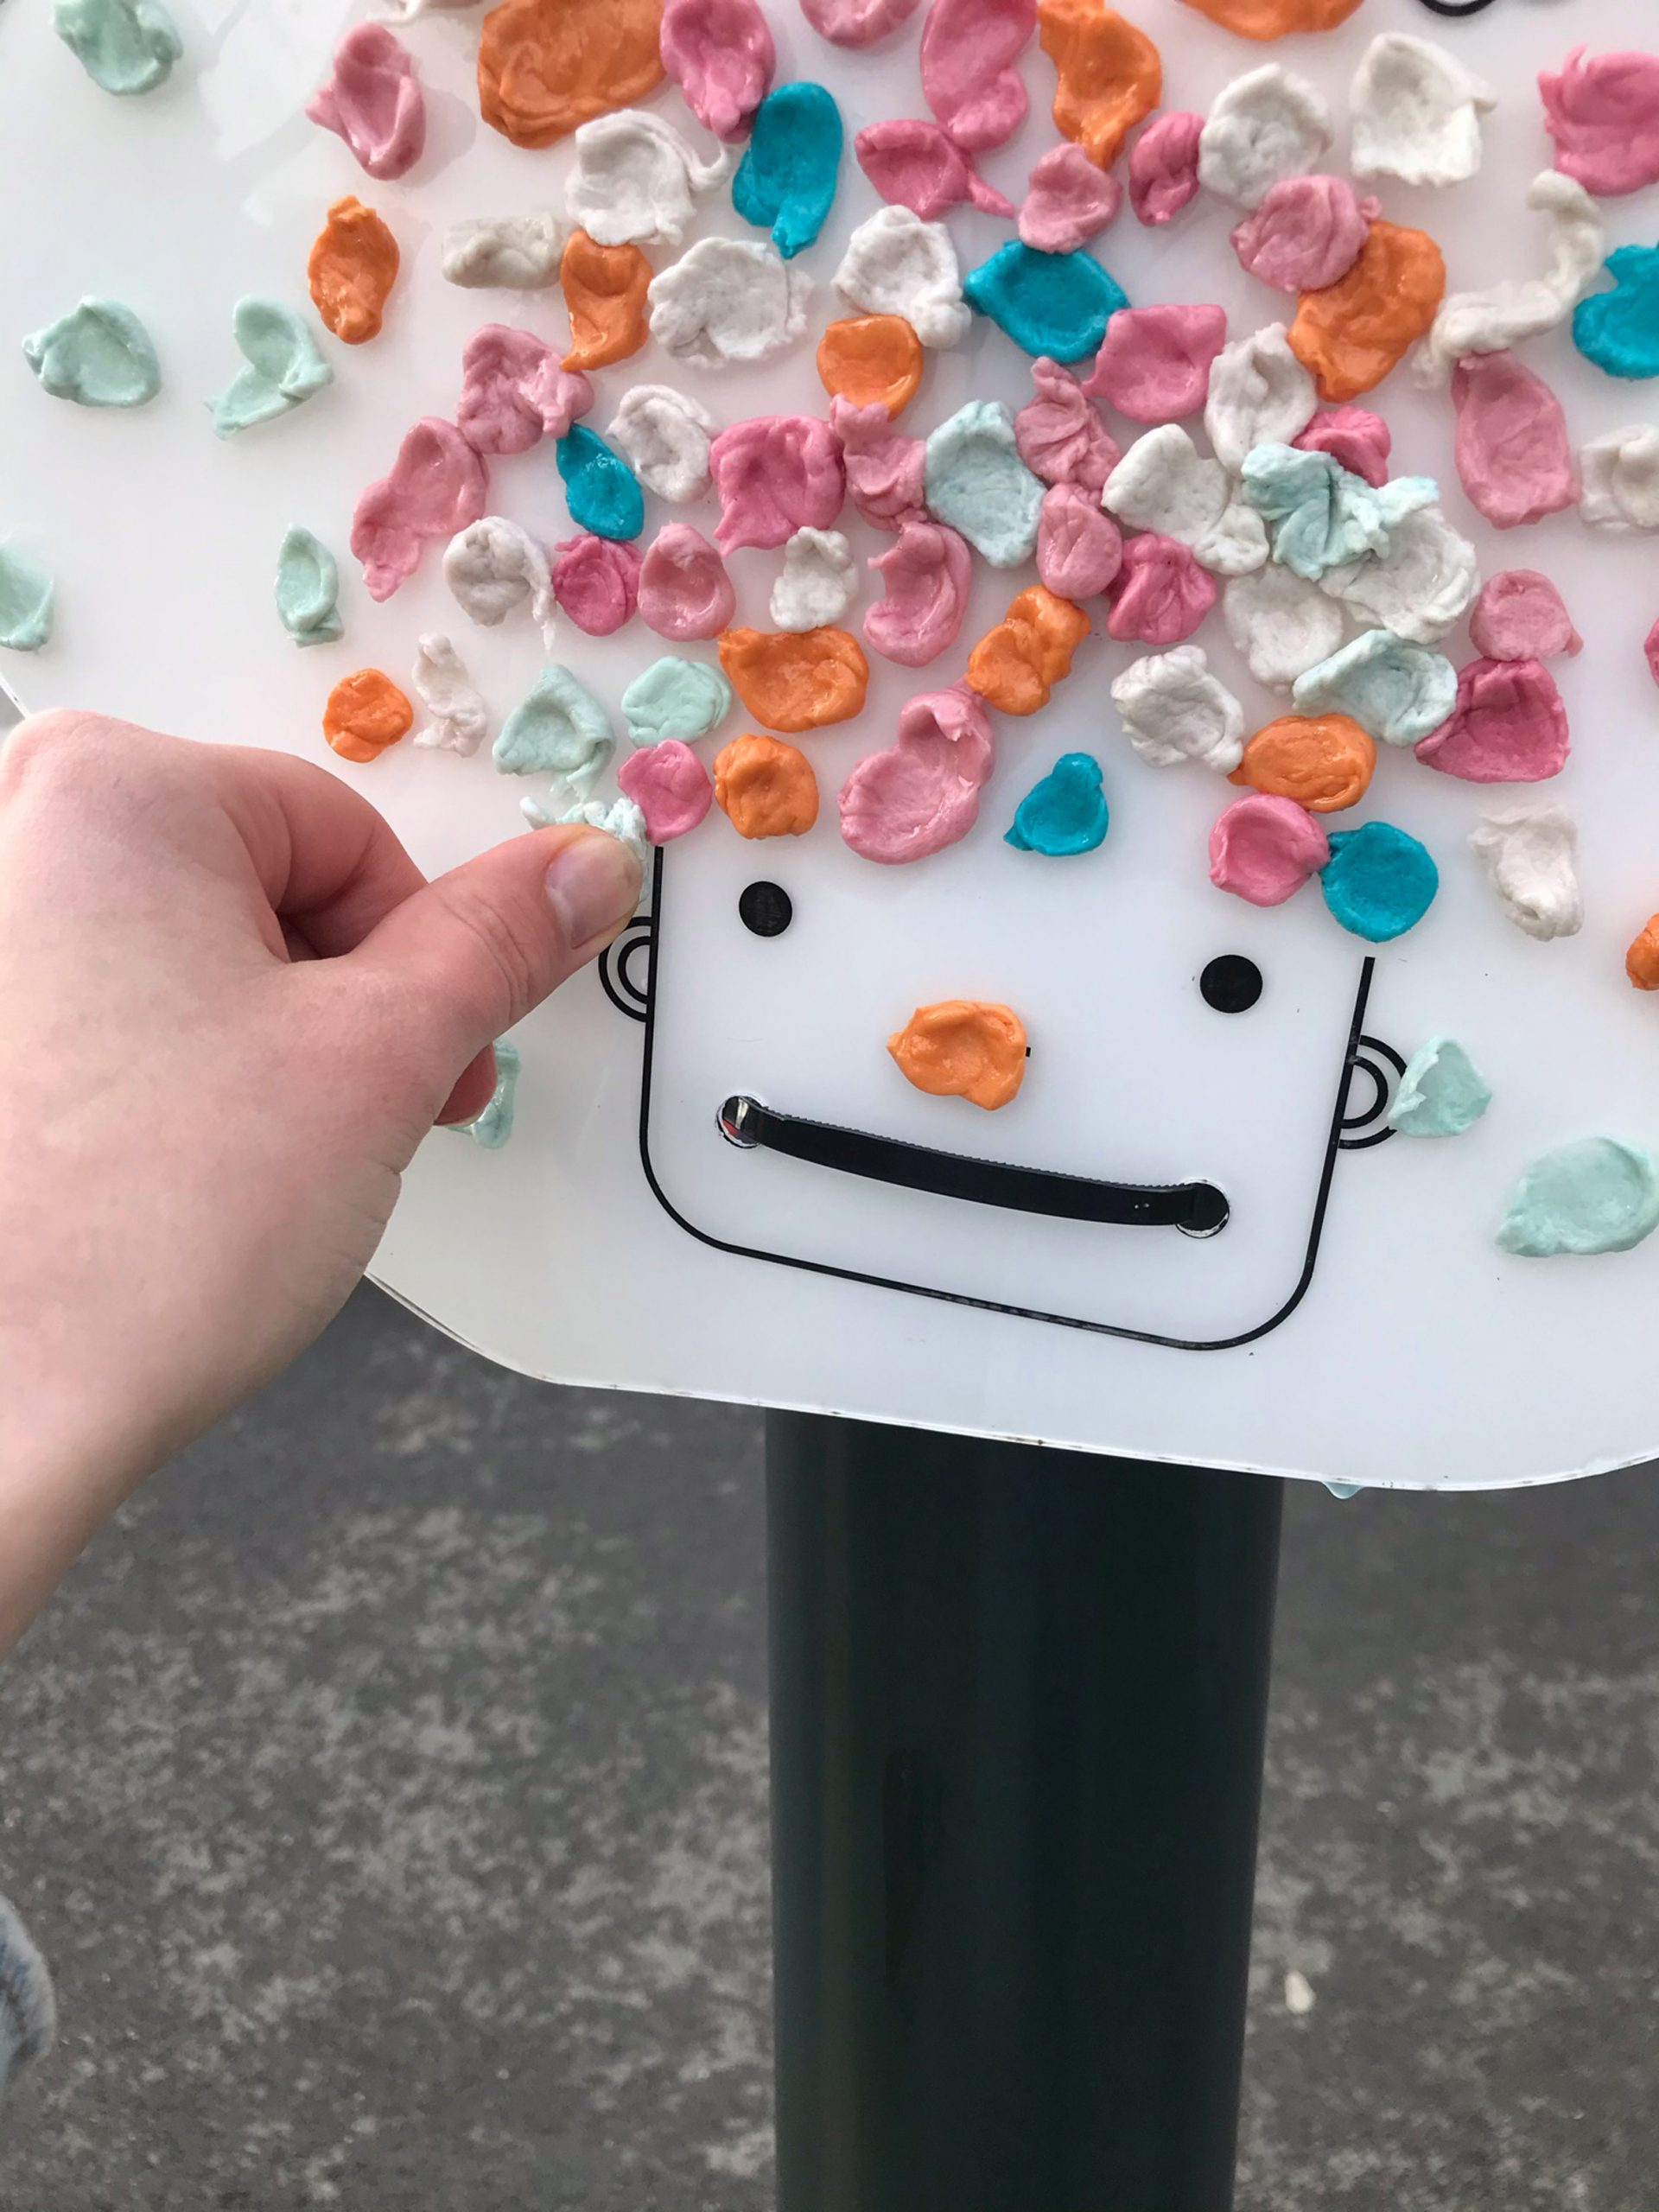 Close-up of chewing gum collection board by Hugo Maupetit and Vivian Fischer